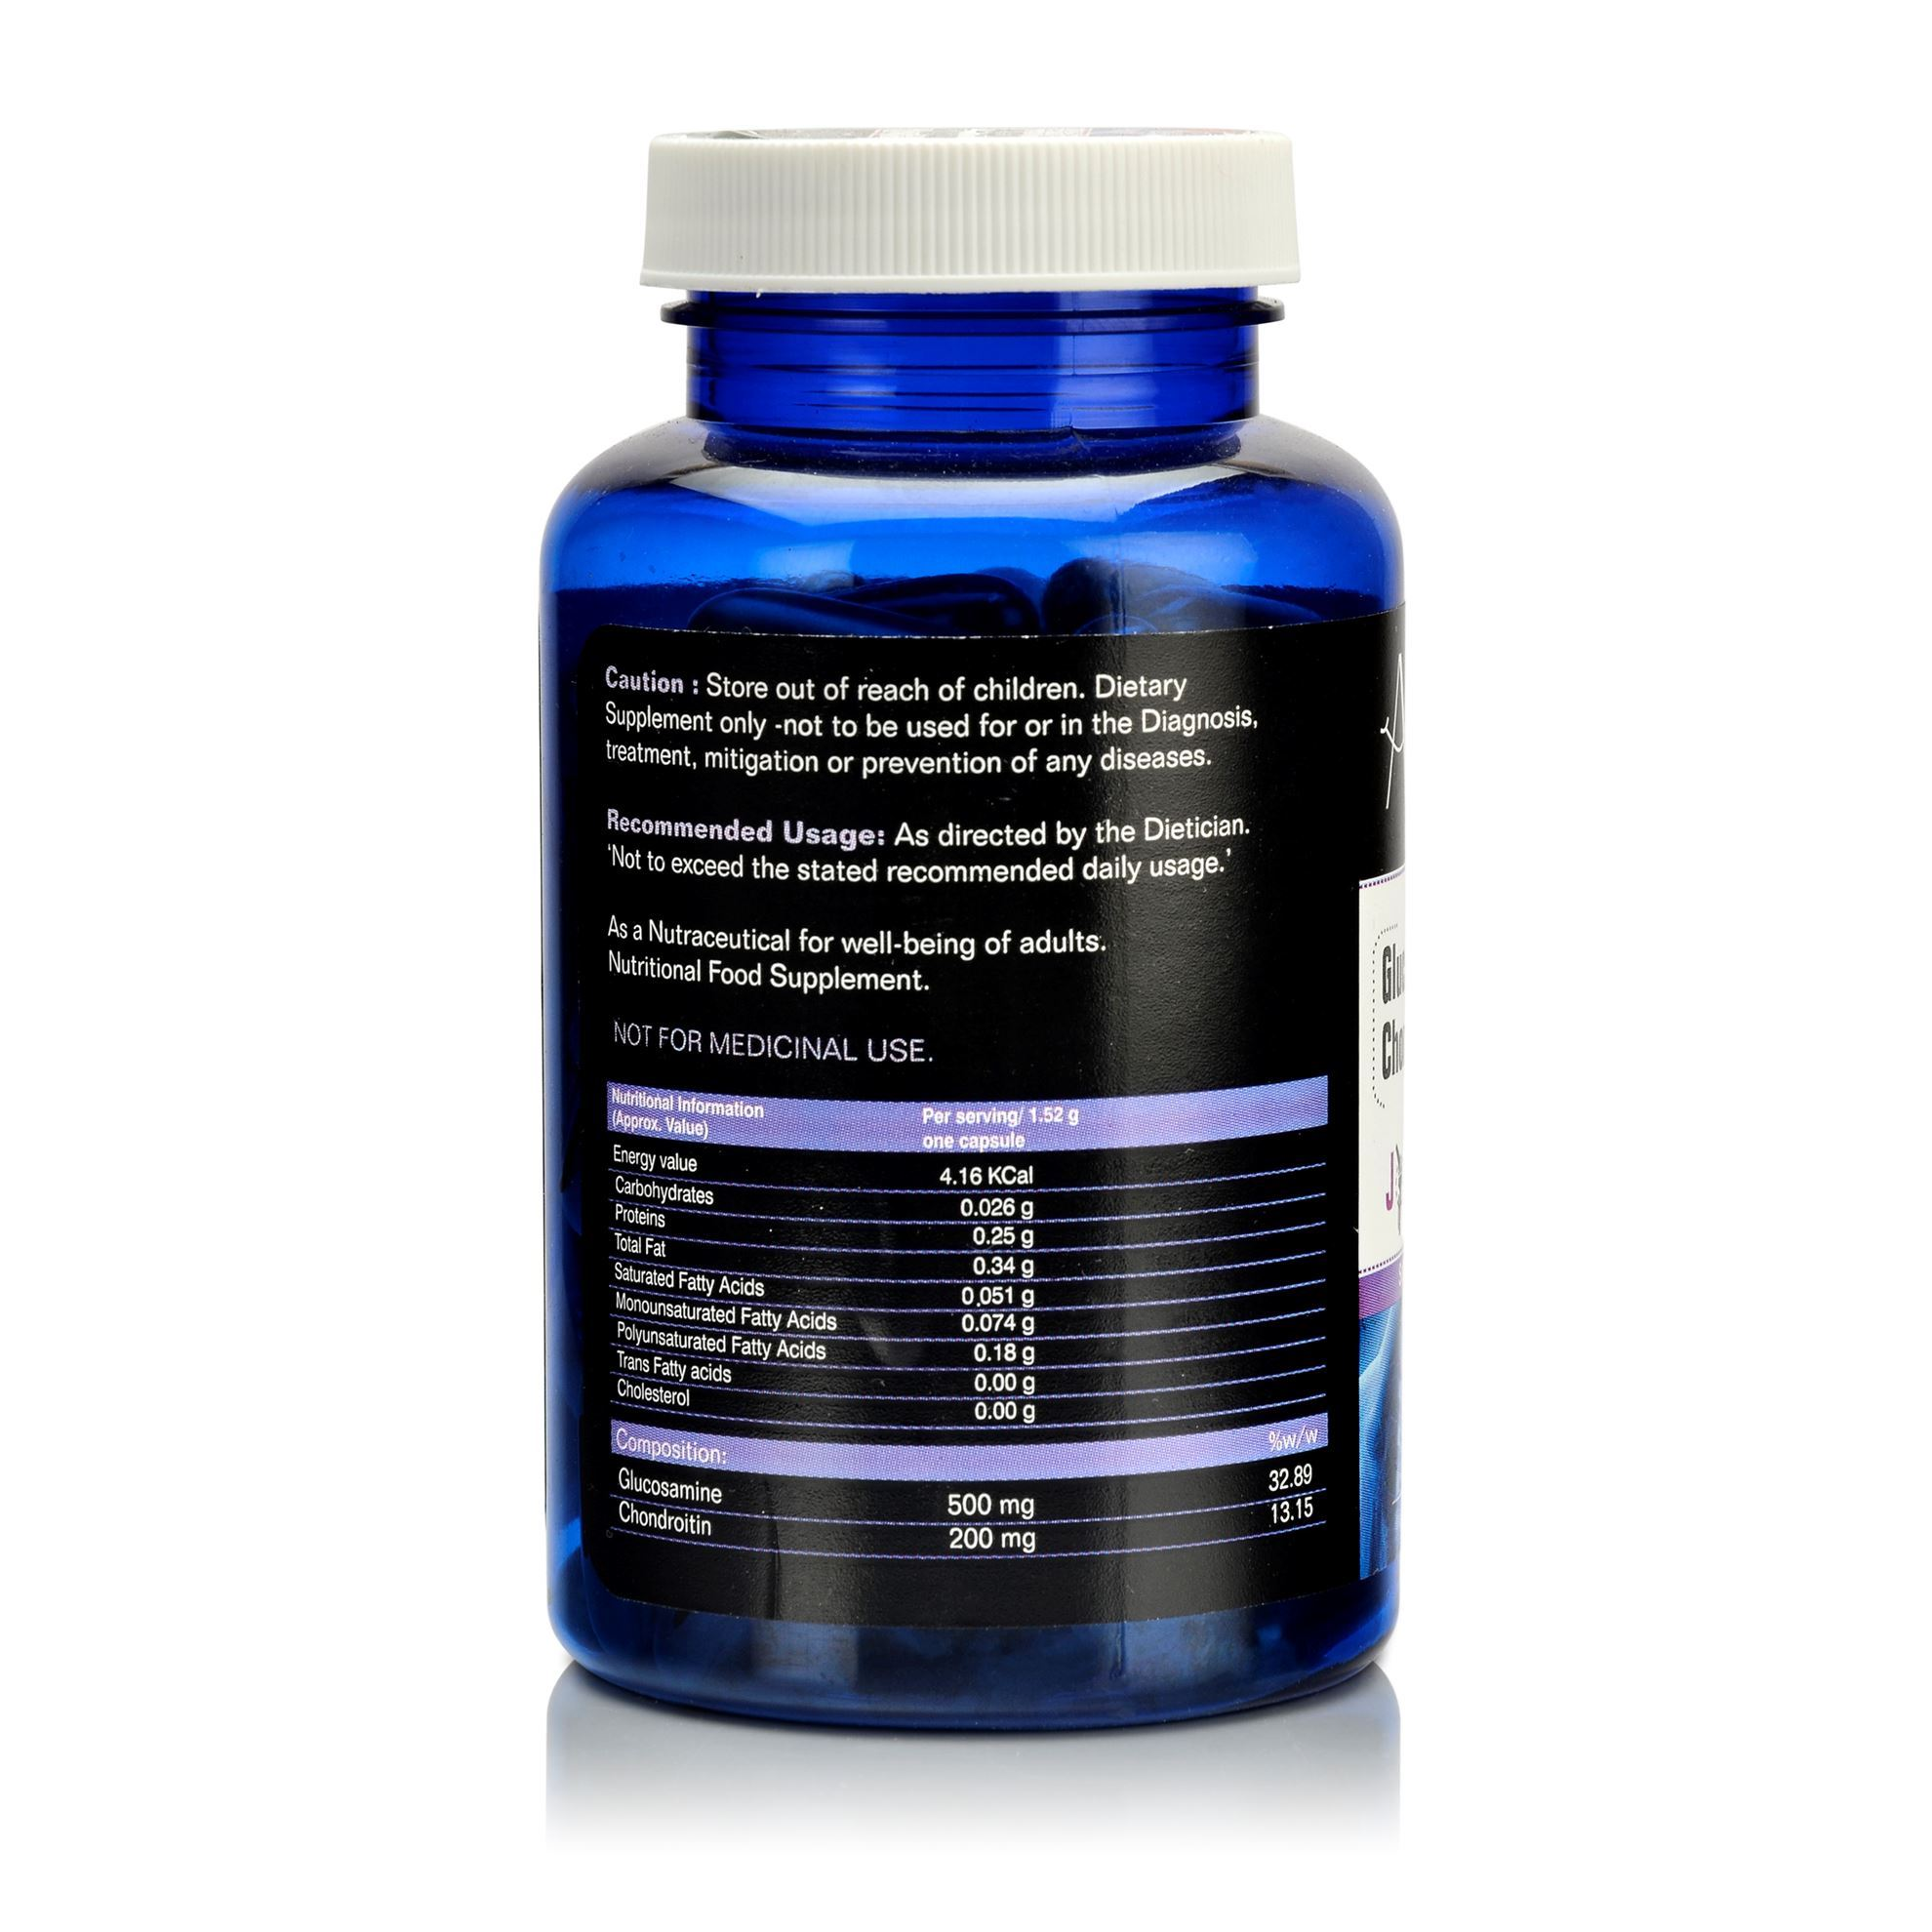 Picture of Alvizia Glucosamine 500 mg Chondroitin 200 mg Joint Complex Softgel 90 Capsules